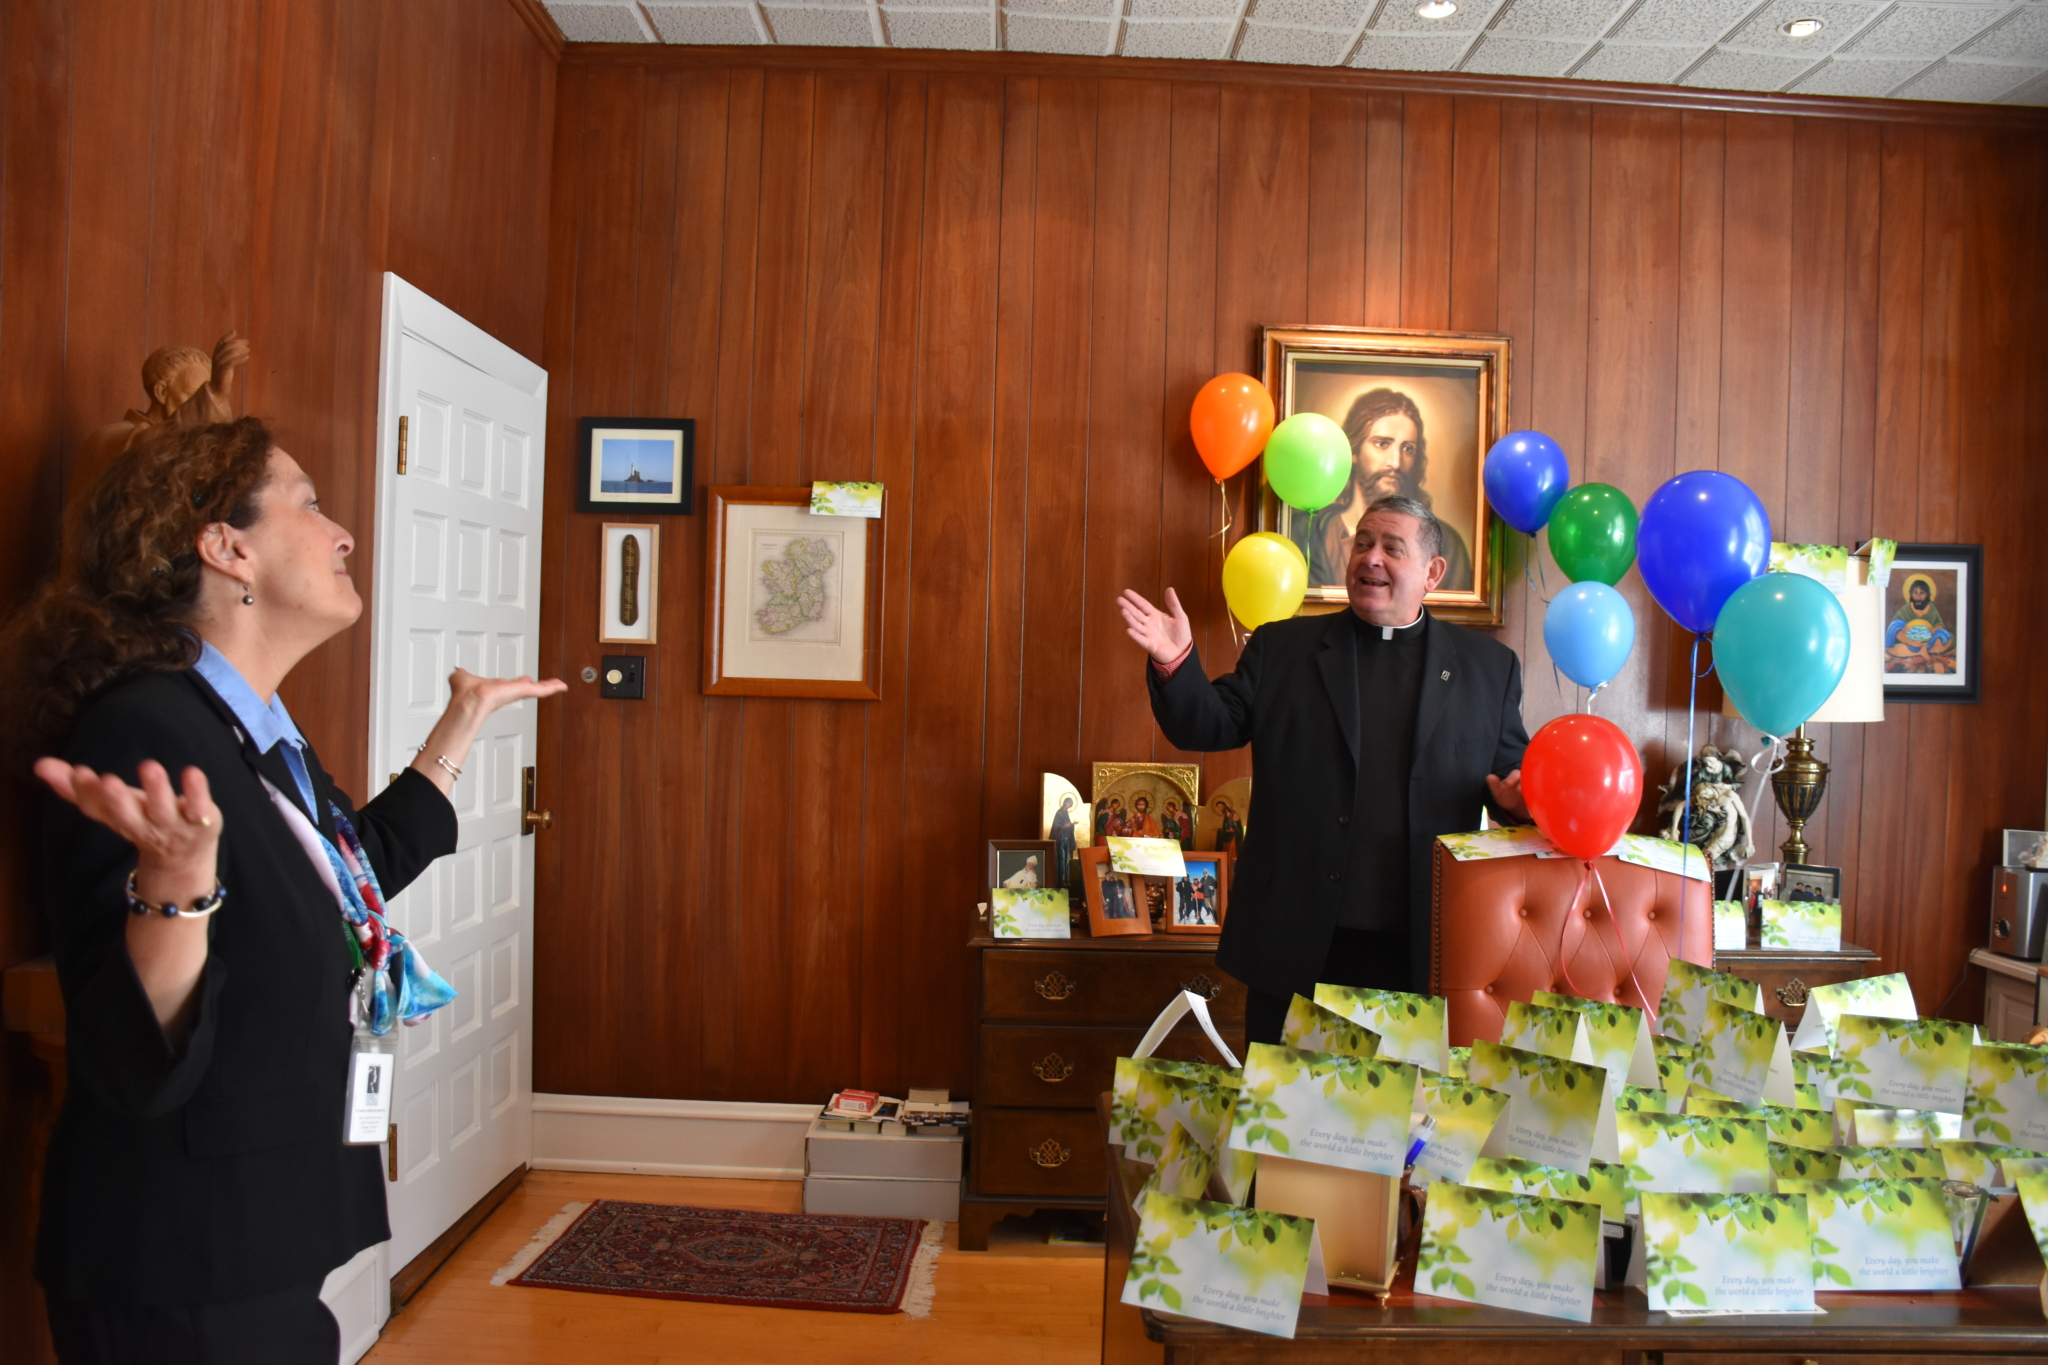 Fr. Scott's office filled with balloons and birthday cards